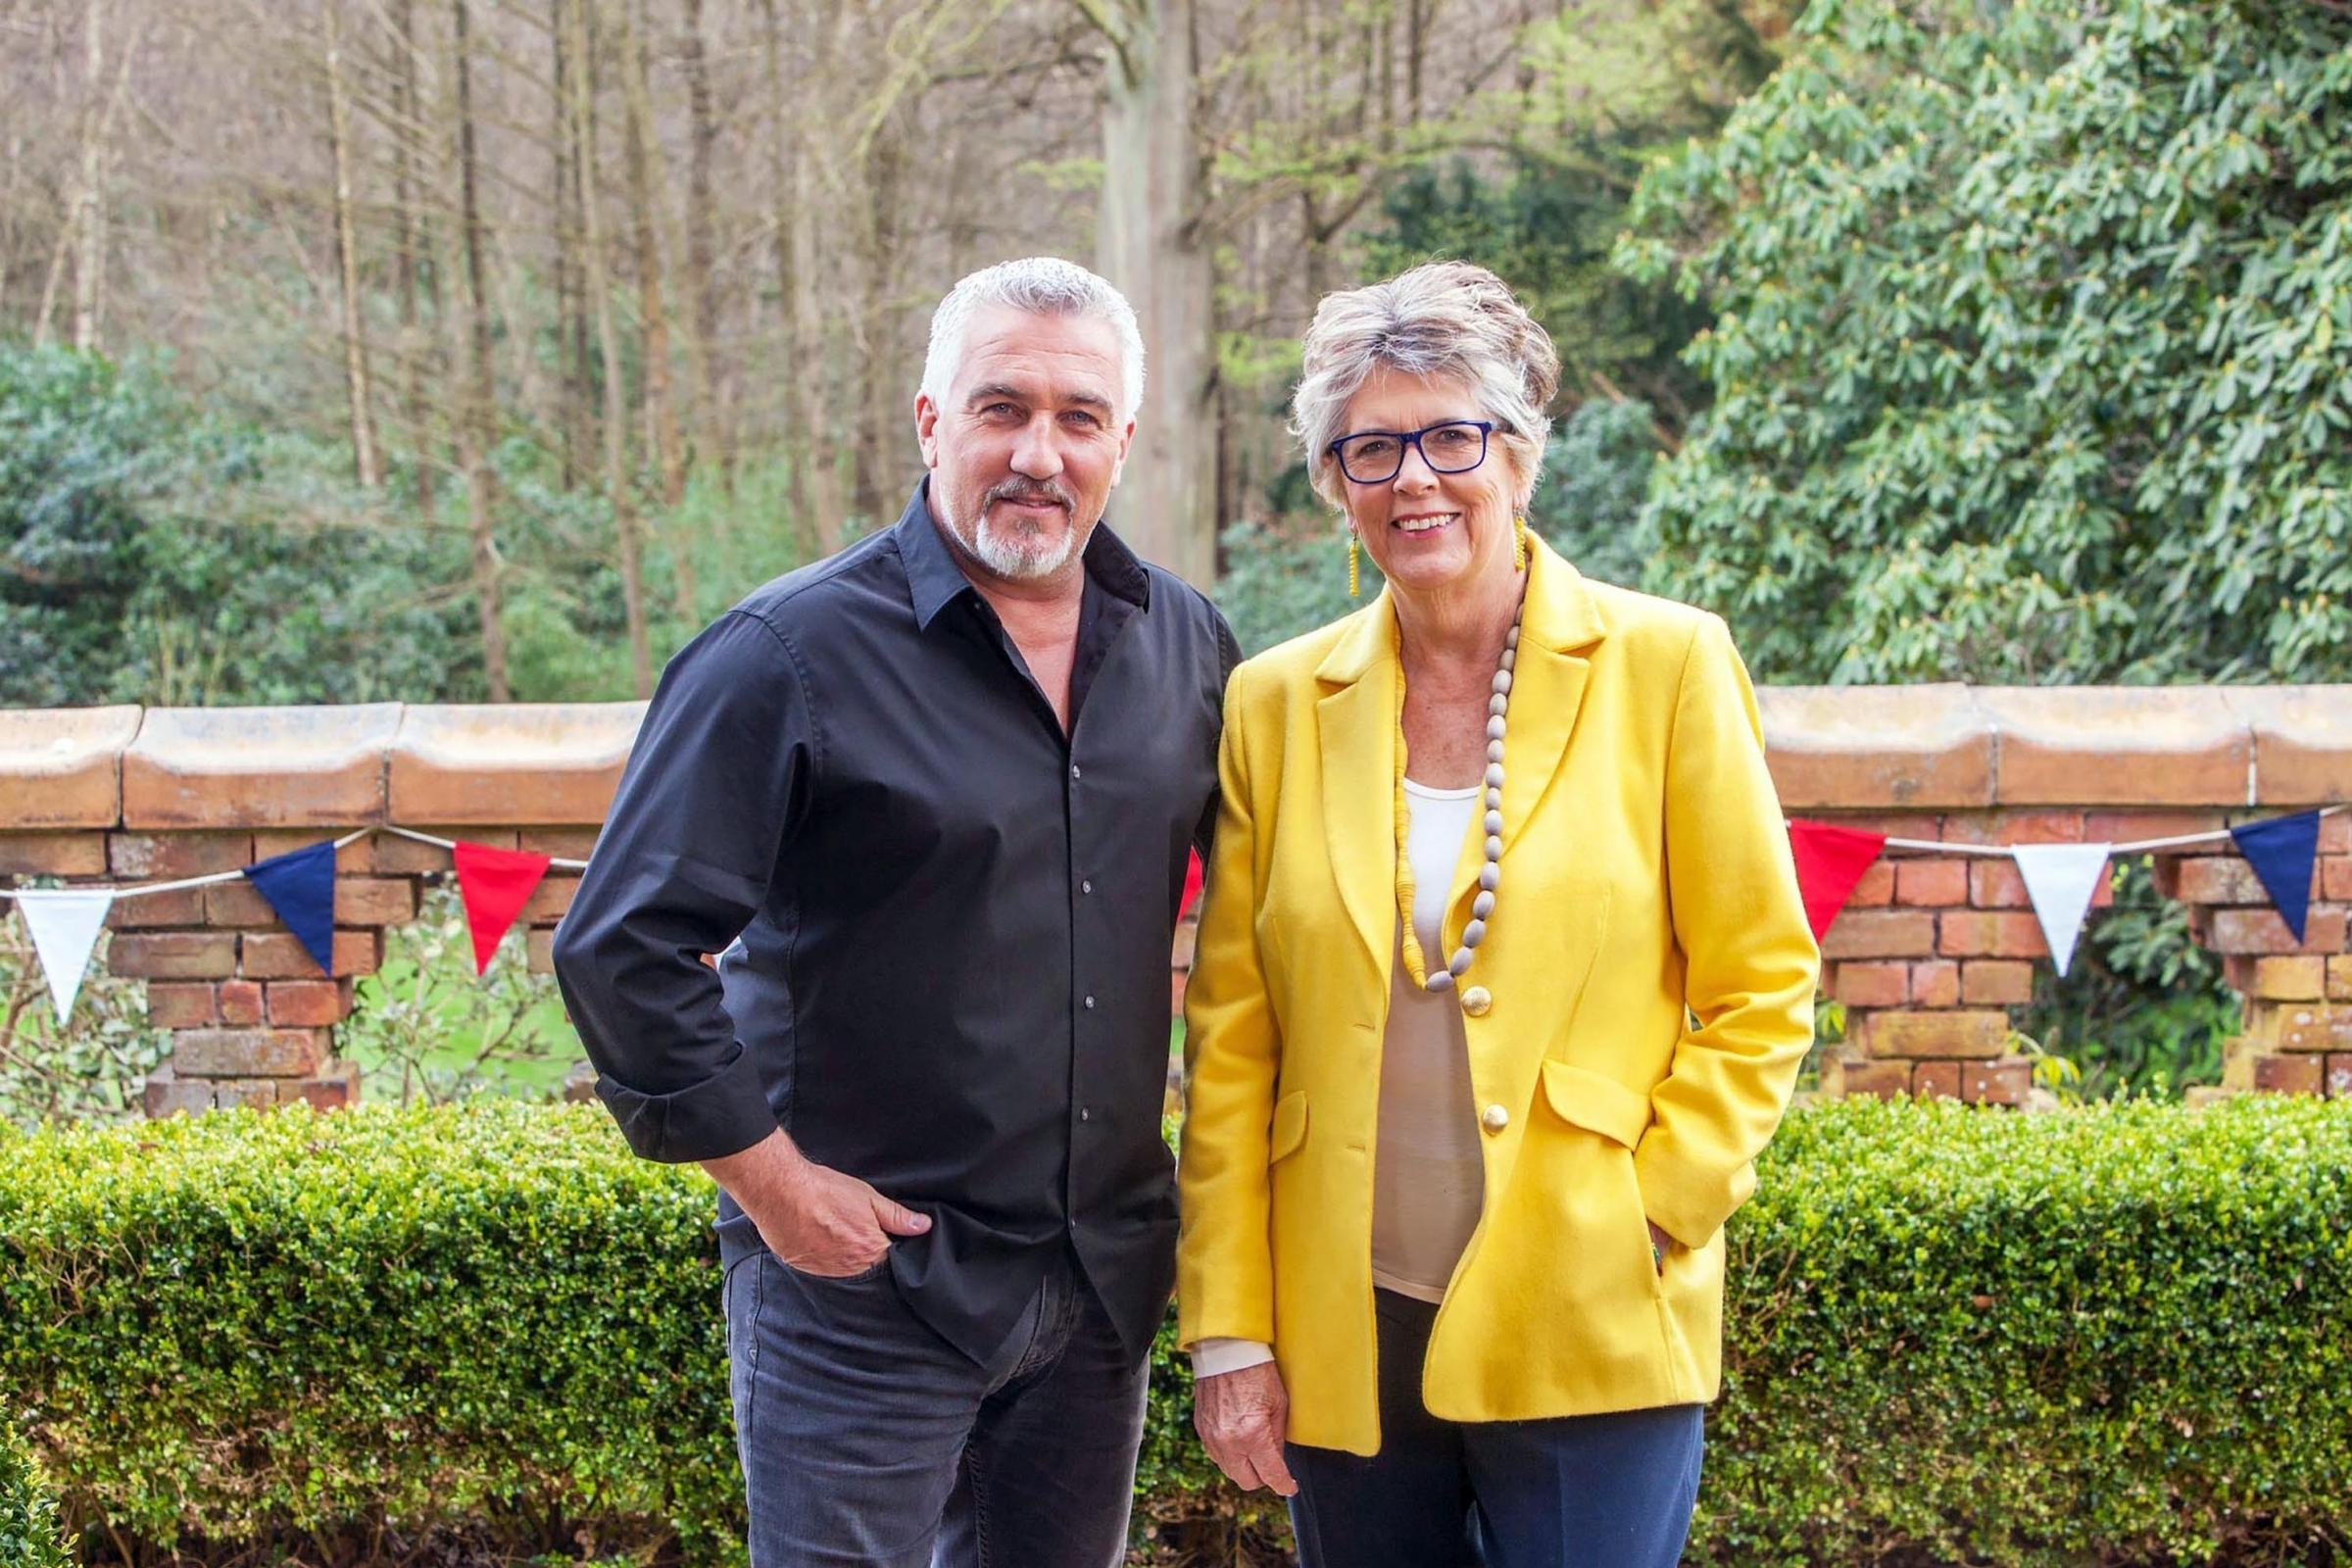 Undated Handout Photo from The Great British Bake Off. Pictured: Paul Hollywood and Prue Leith. See PA Feature TV Bake Off. Picture credit should read: PA/ Love Productions / Channel 4 / Mark Bourdillon. WARNING: This picture must only be used to accompan